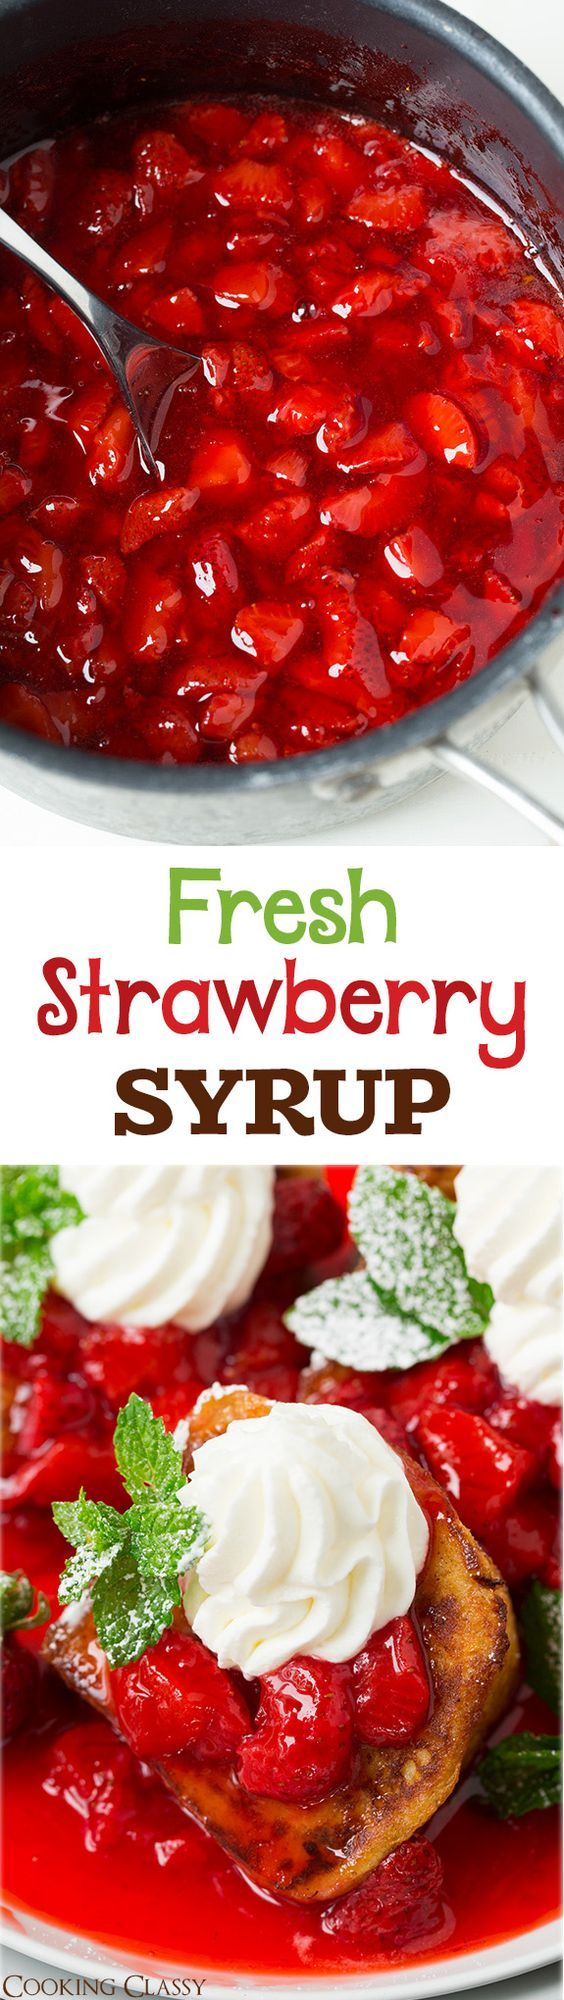 Fresh Strawberry Syrup - this syrup is AMAZING! I love that it's not too sweet. It's perfect for pancakes waffles french toast ice cream or oatmeal!